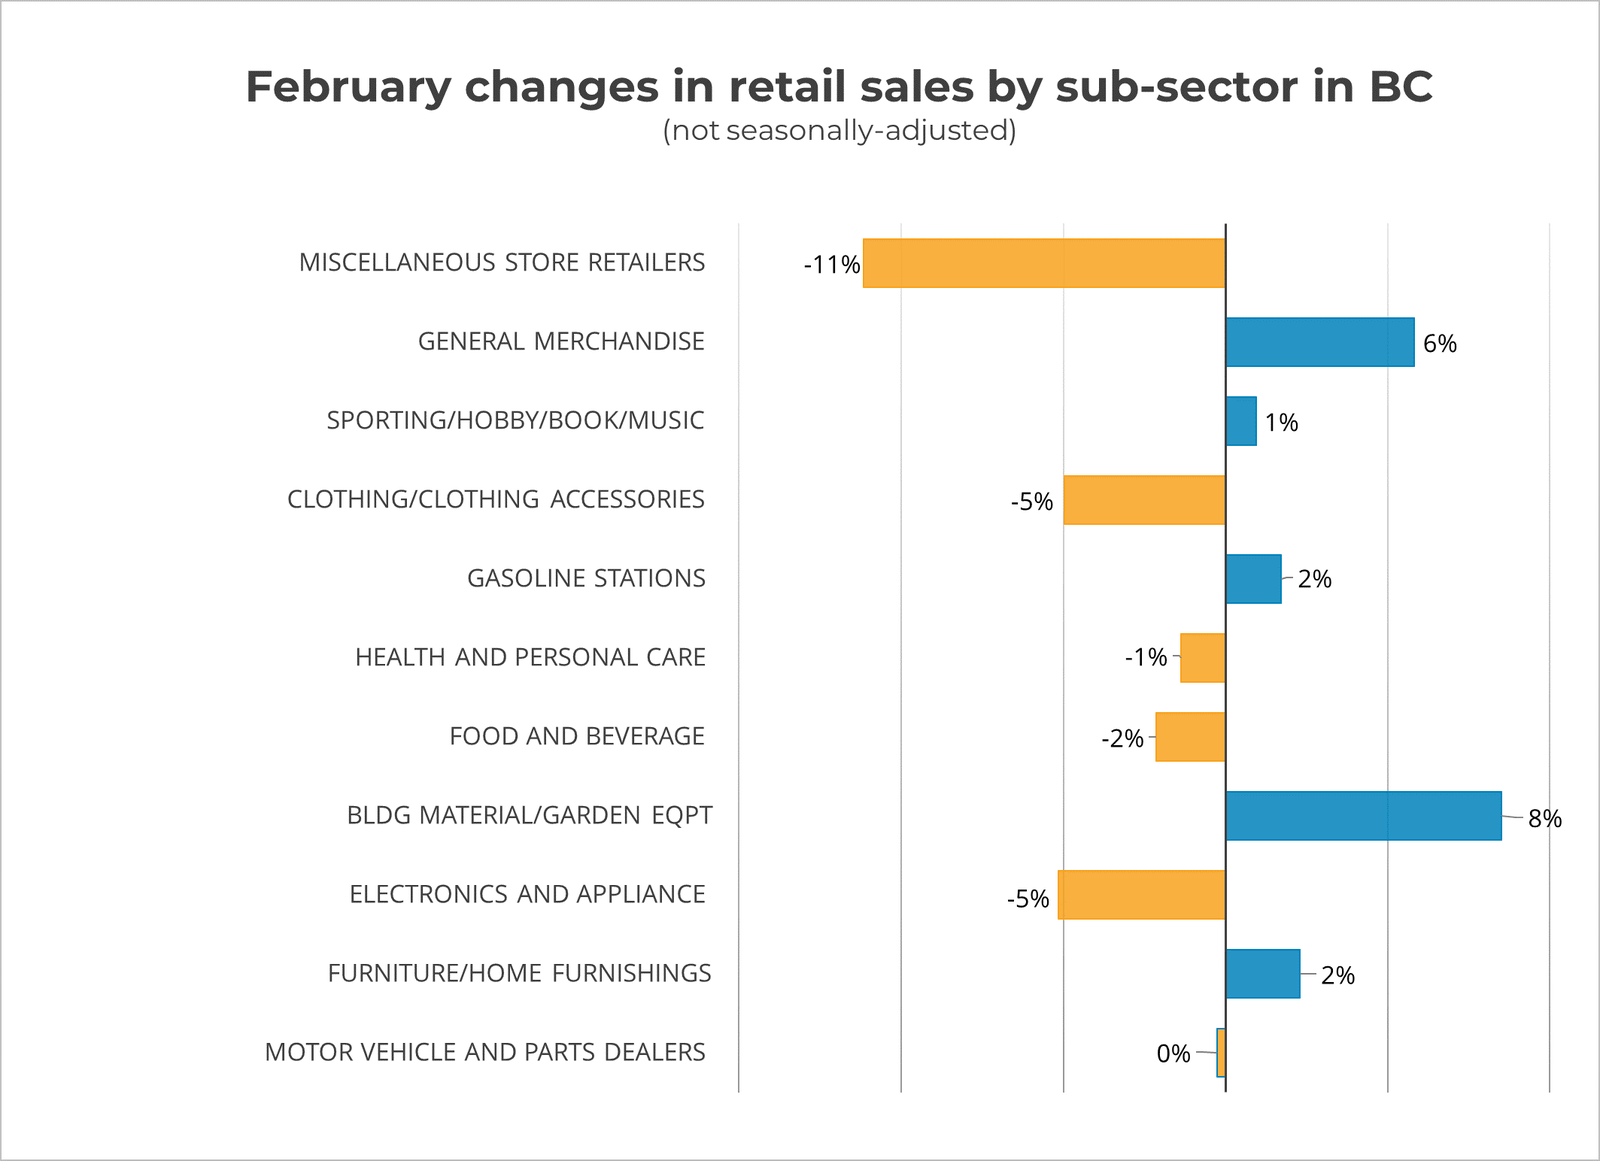 February Changes in Retail Sales by Sector